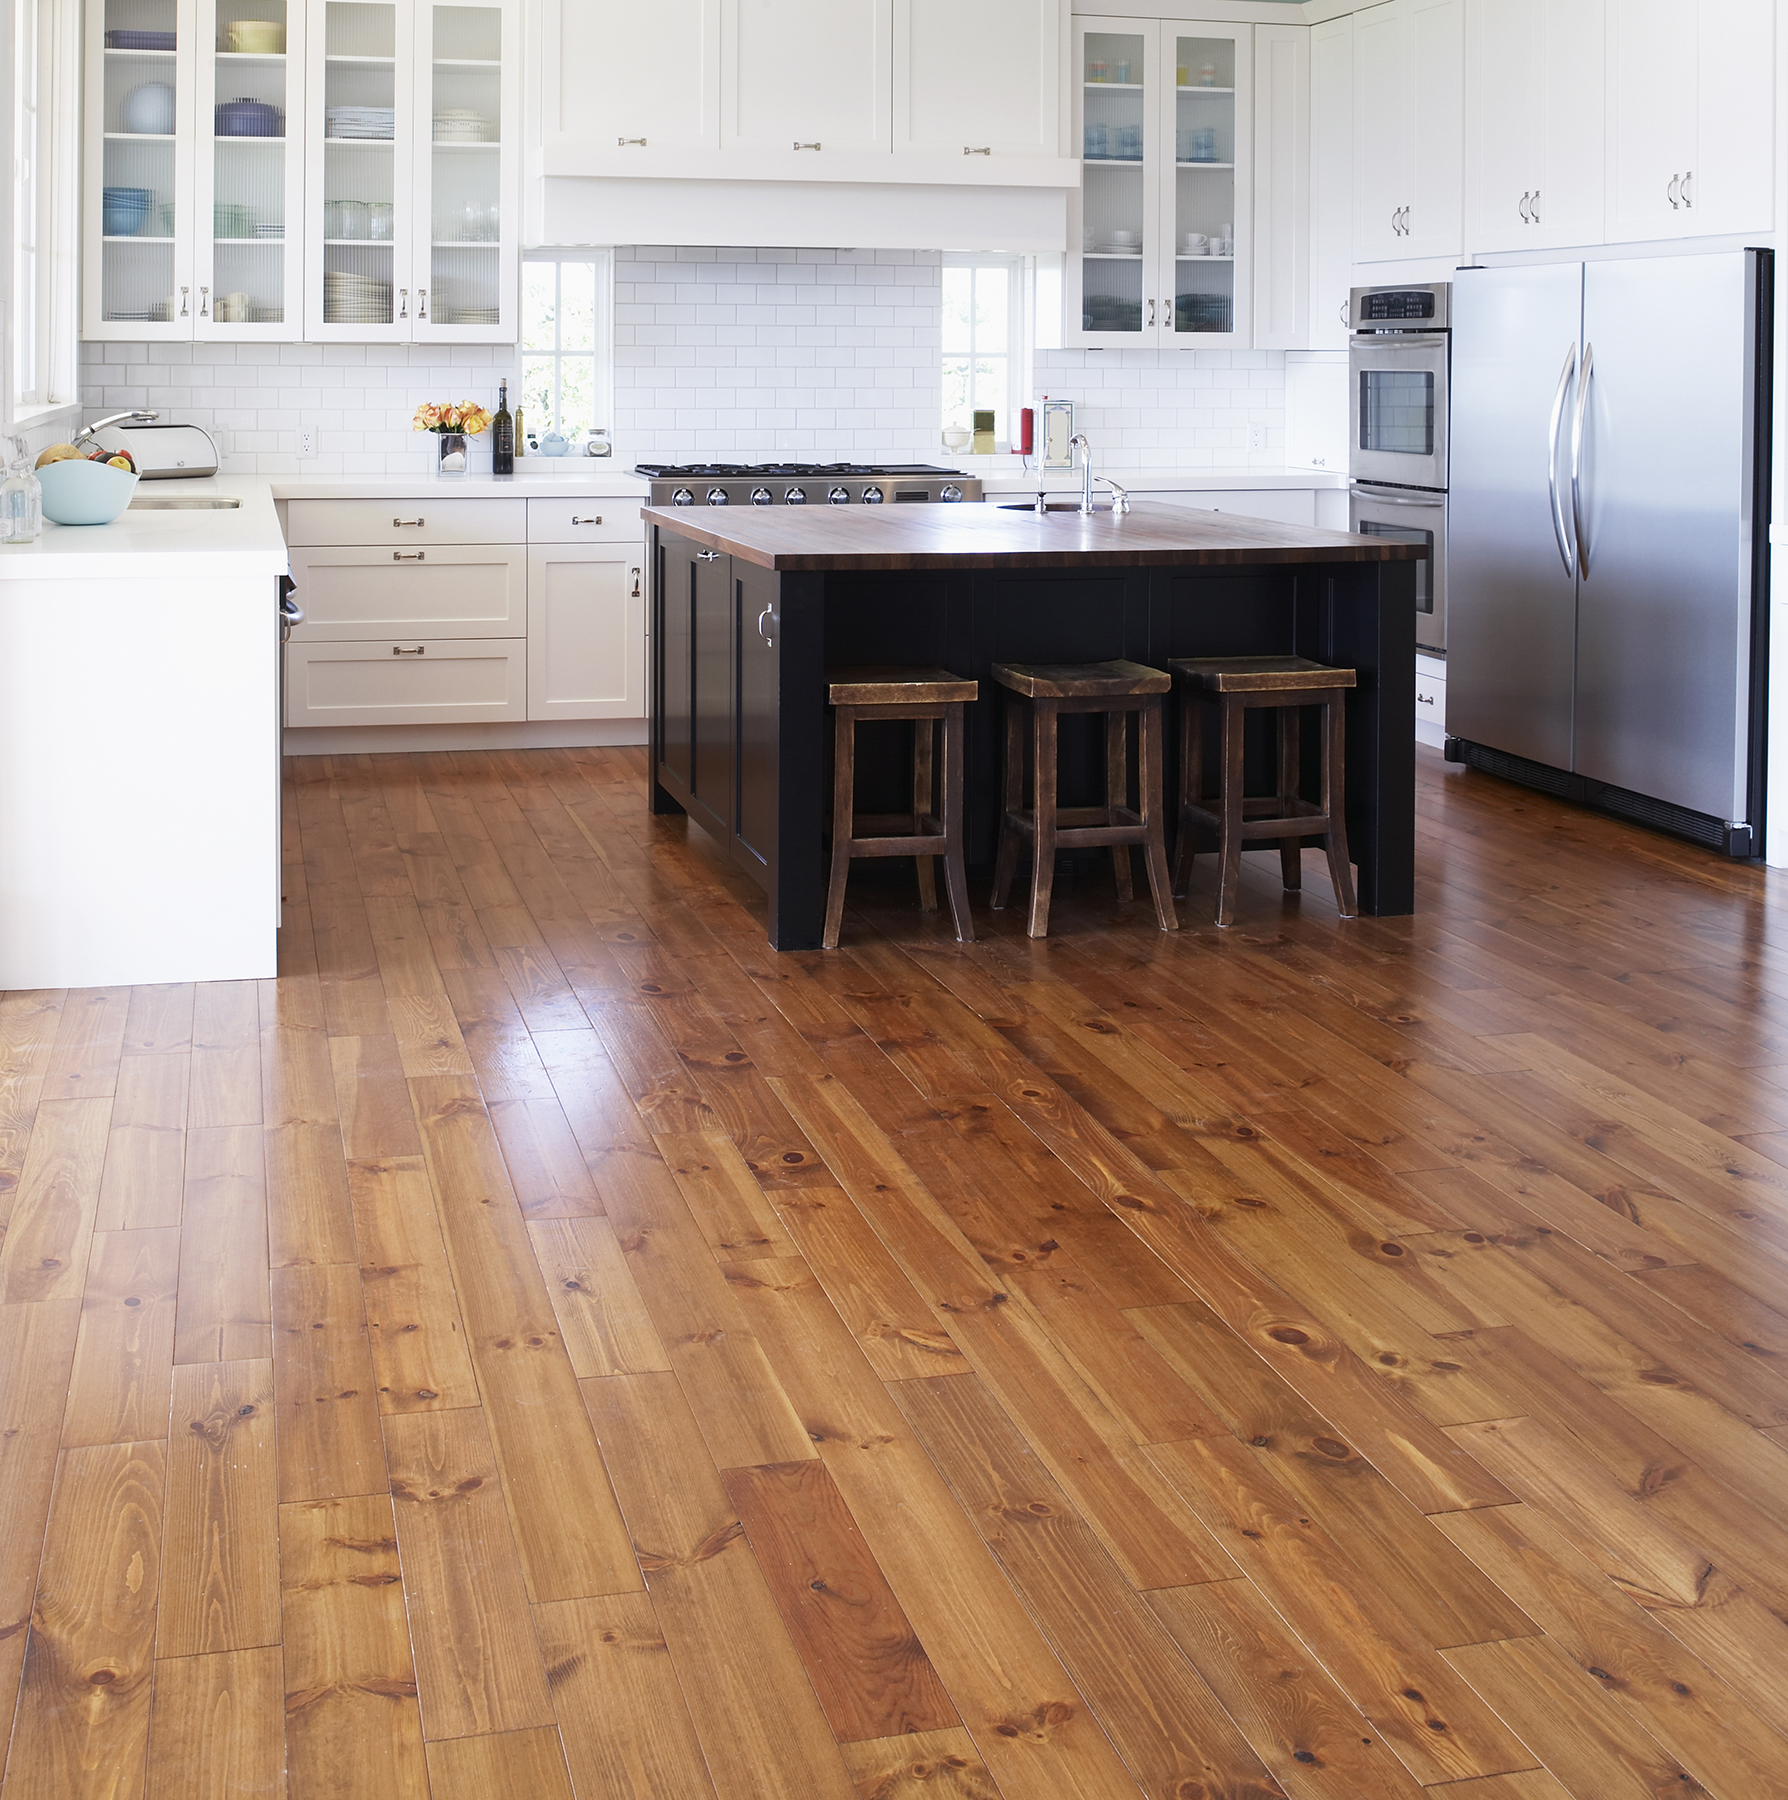 10 Expert Tips To Care For Wood Floors Real Simple